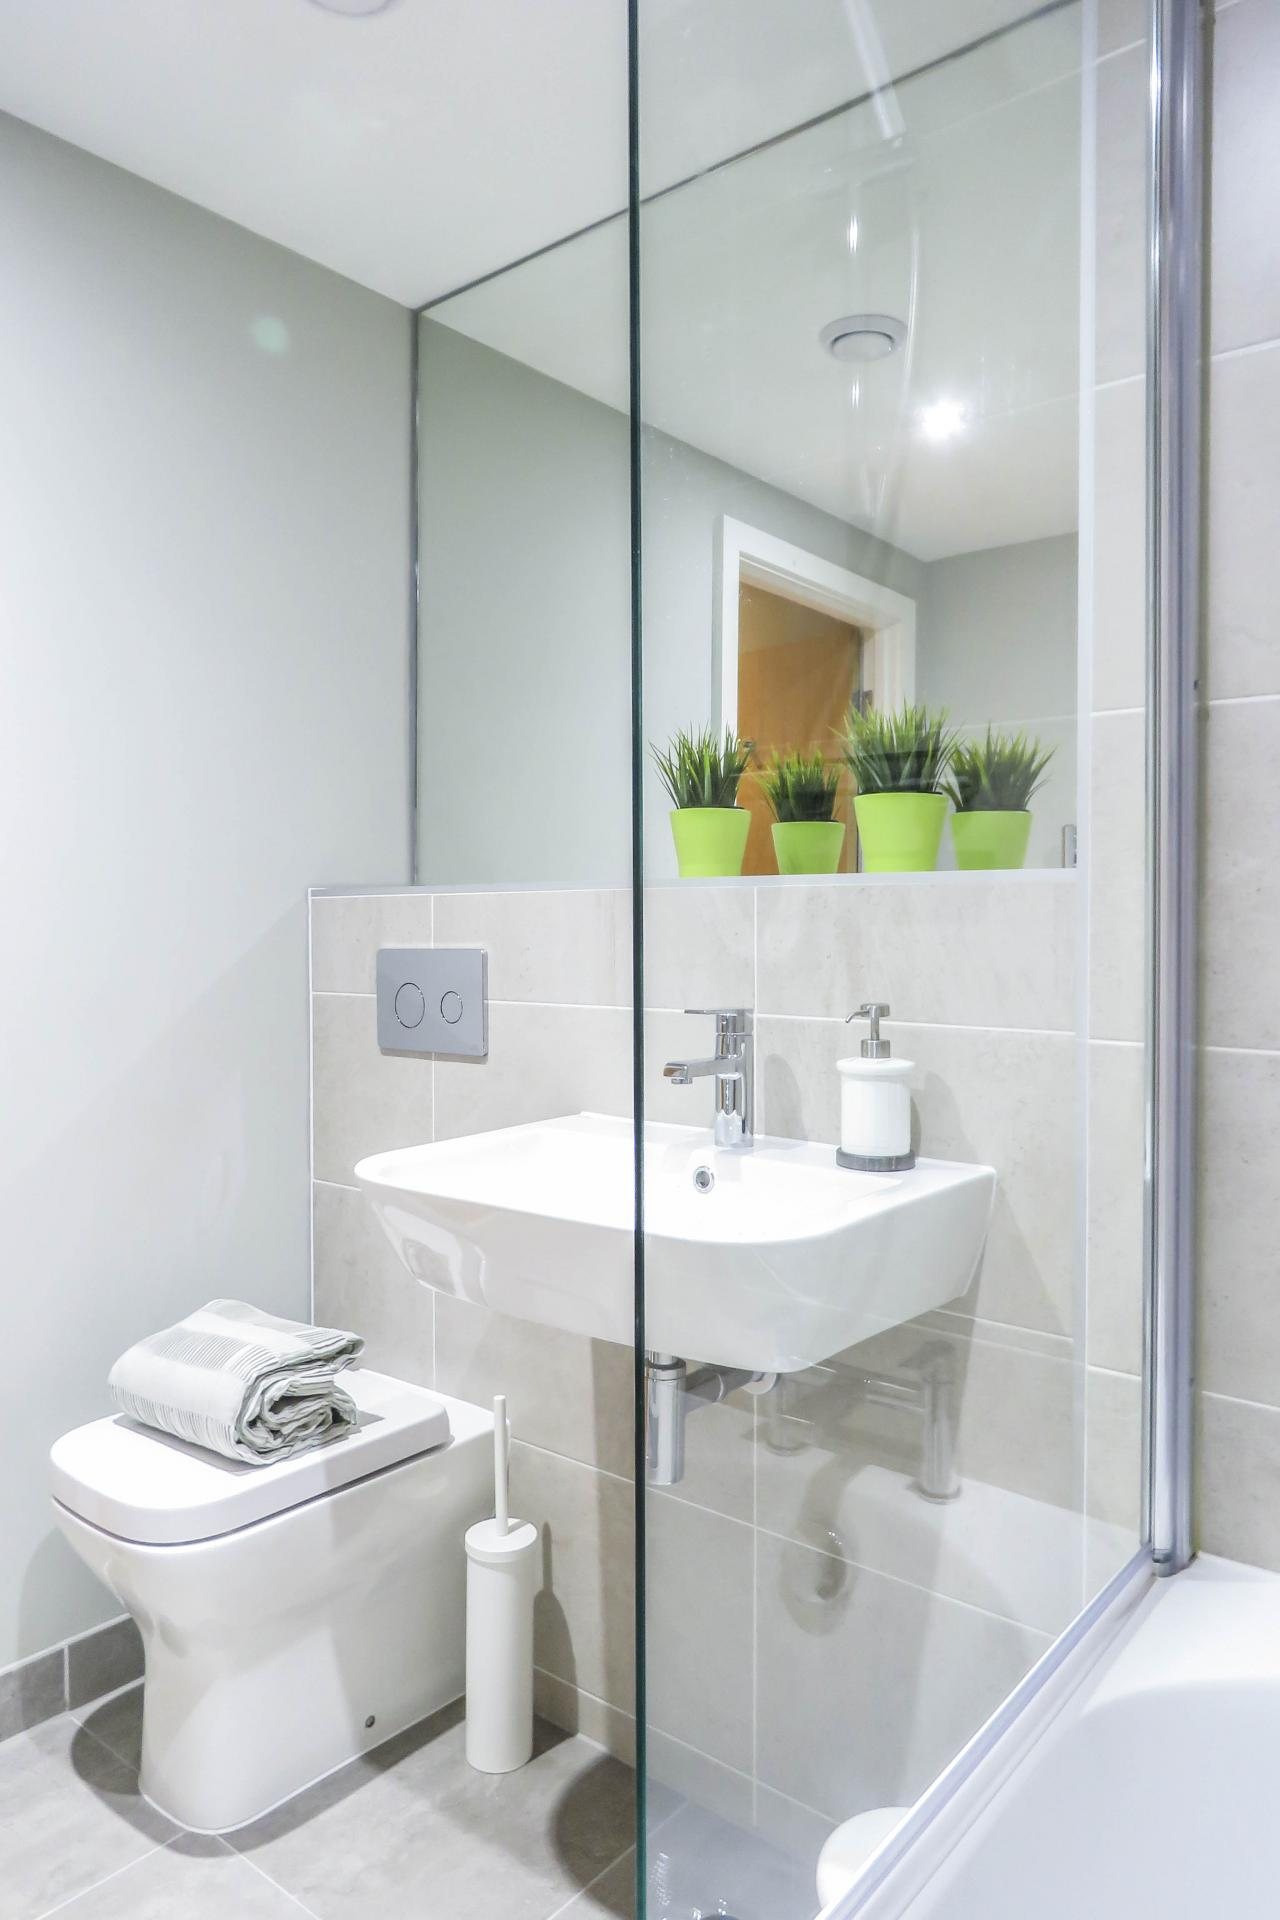 Bathroom at Jewellery Quarter Serviced Apartments - Citybase Apartments